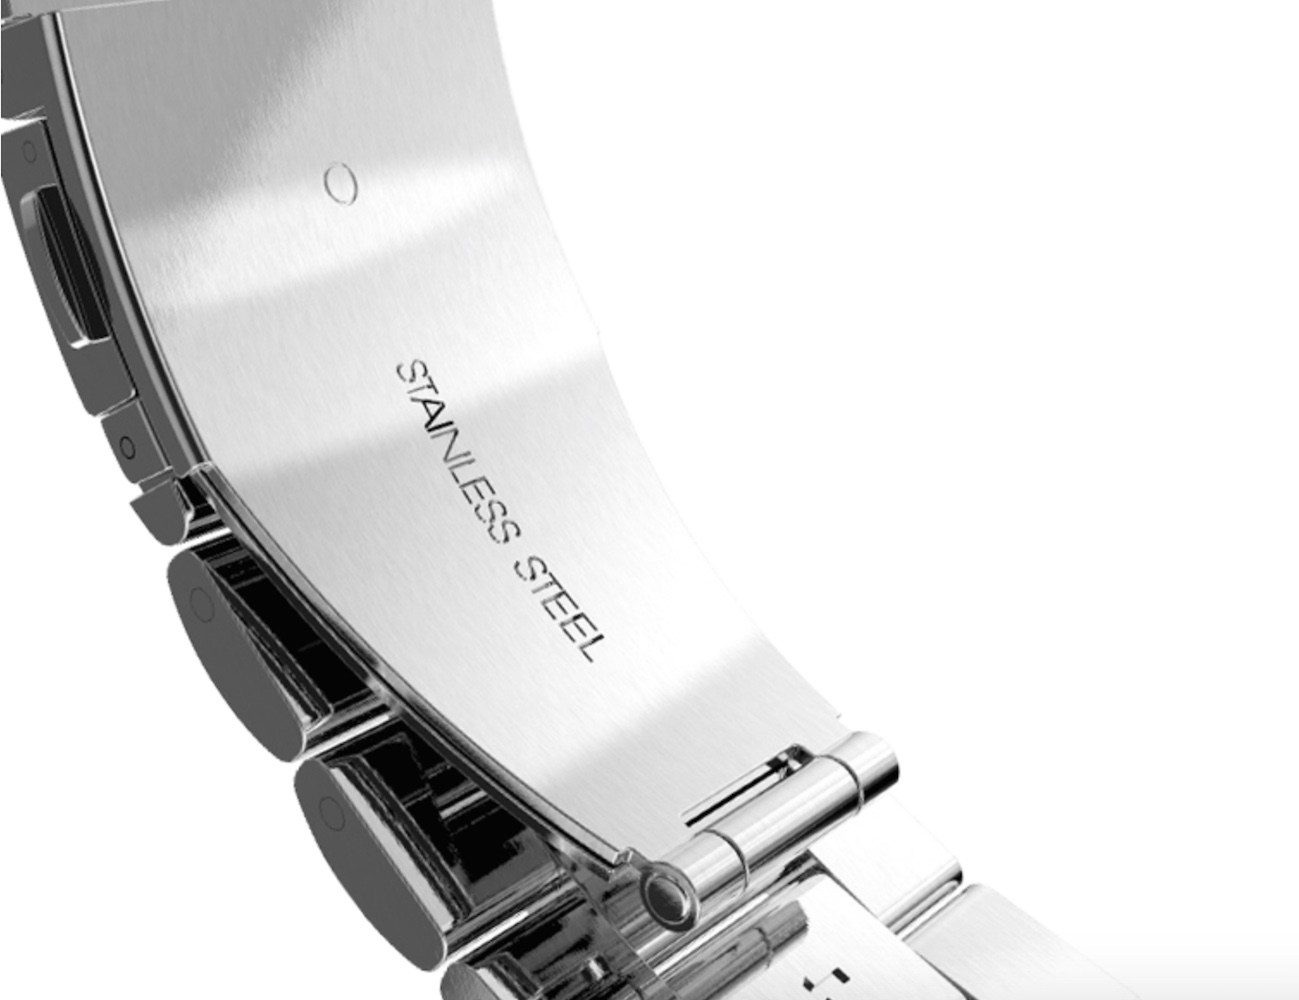 Stainless Steel Band for Apple Watch by Hoco.